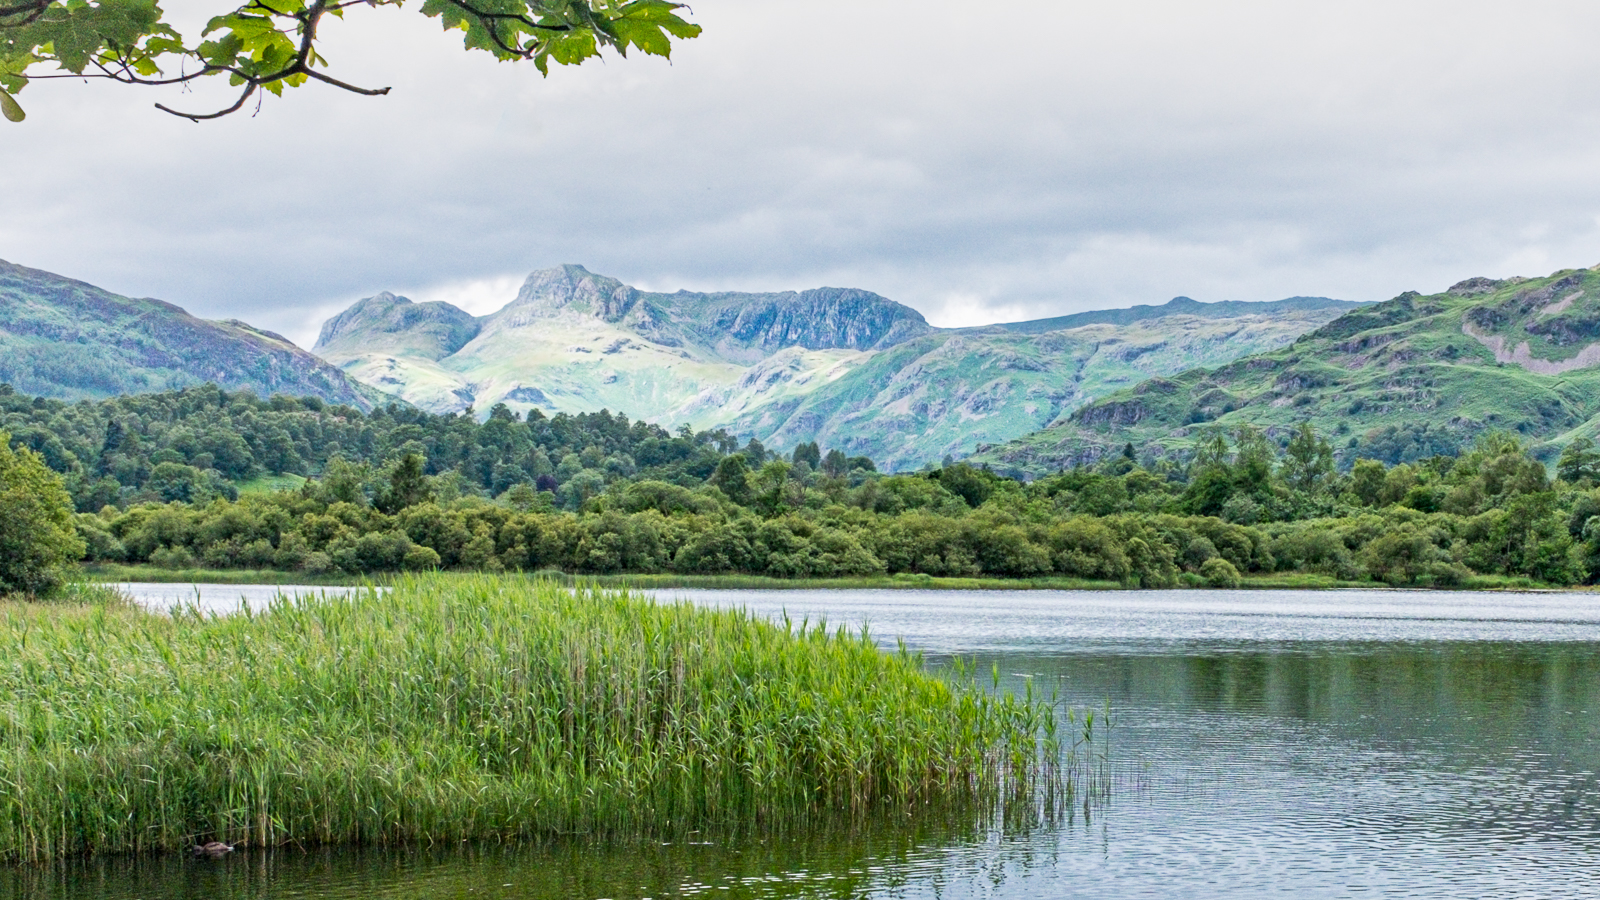 langdale-pike-over-elter-water-by-chris-frost.